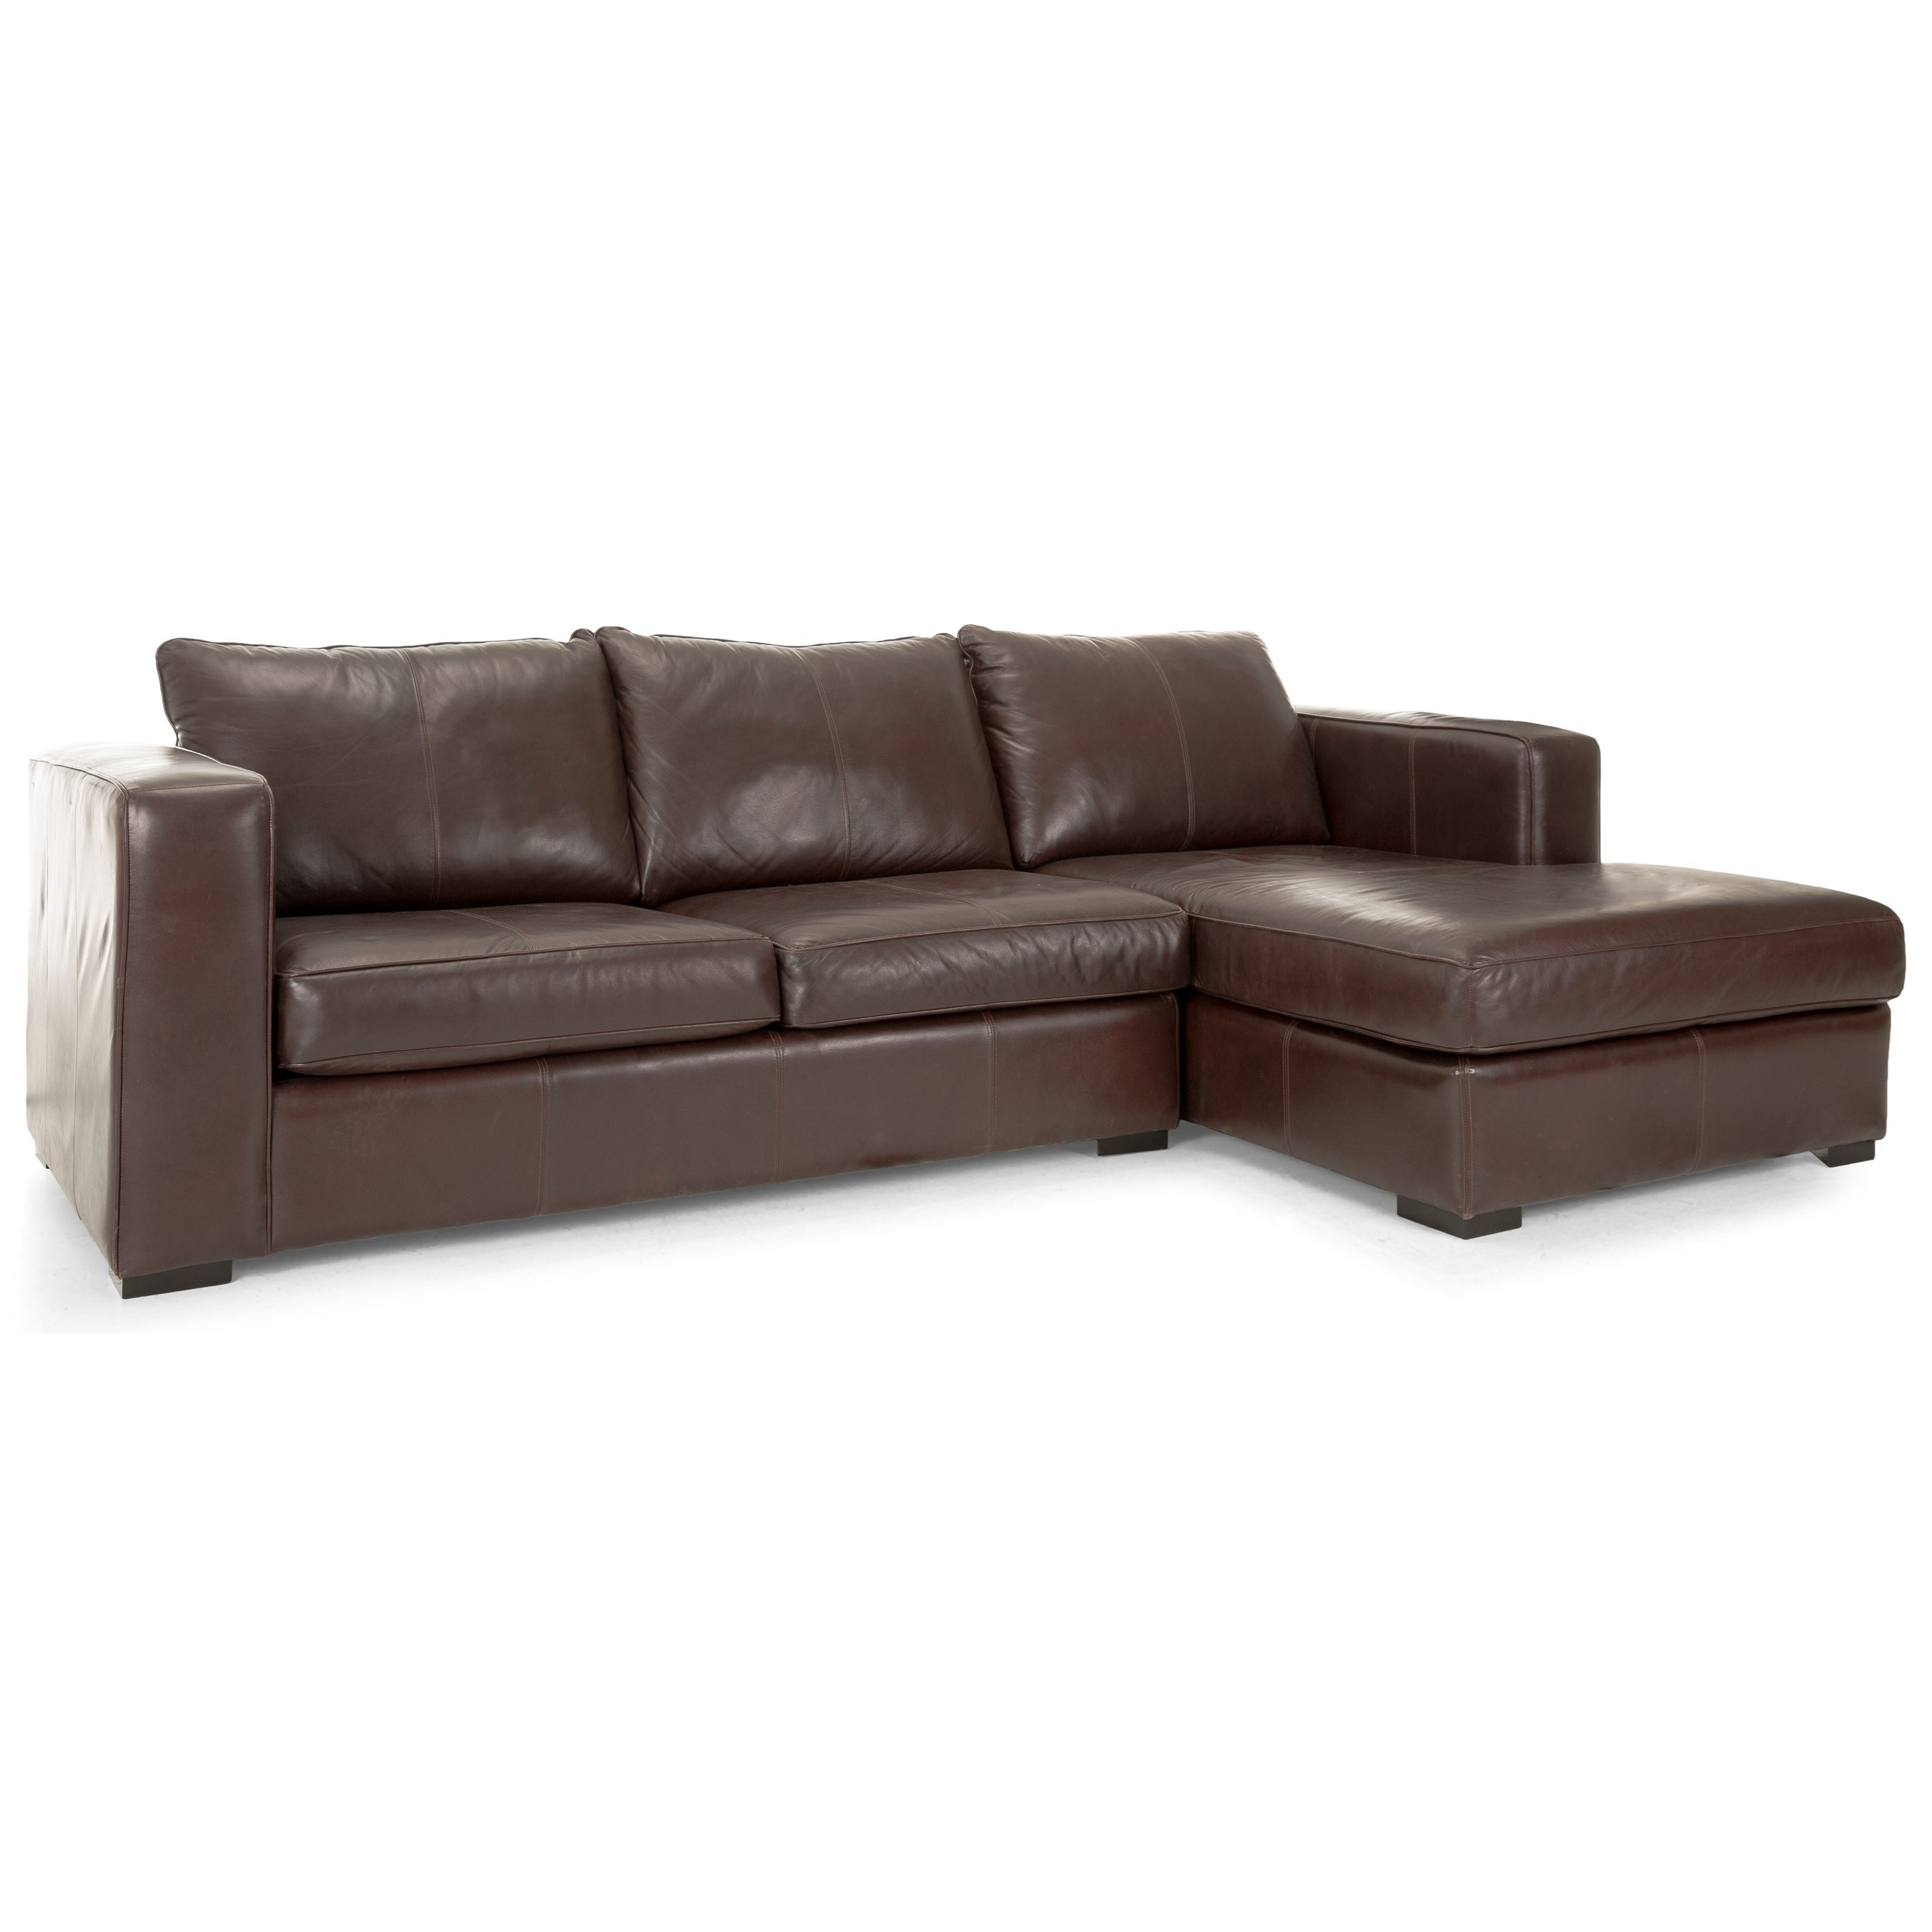 2900 Sofa with Chaise by Decor-Rest at Rooms for Less